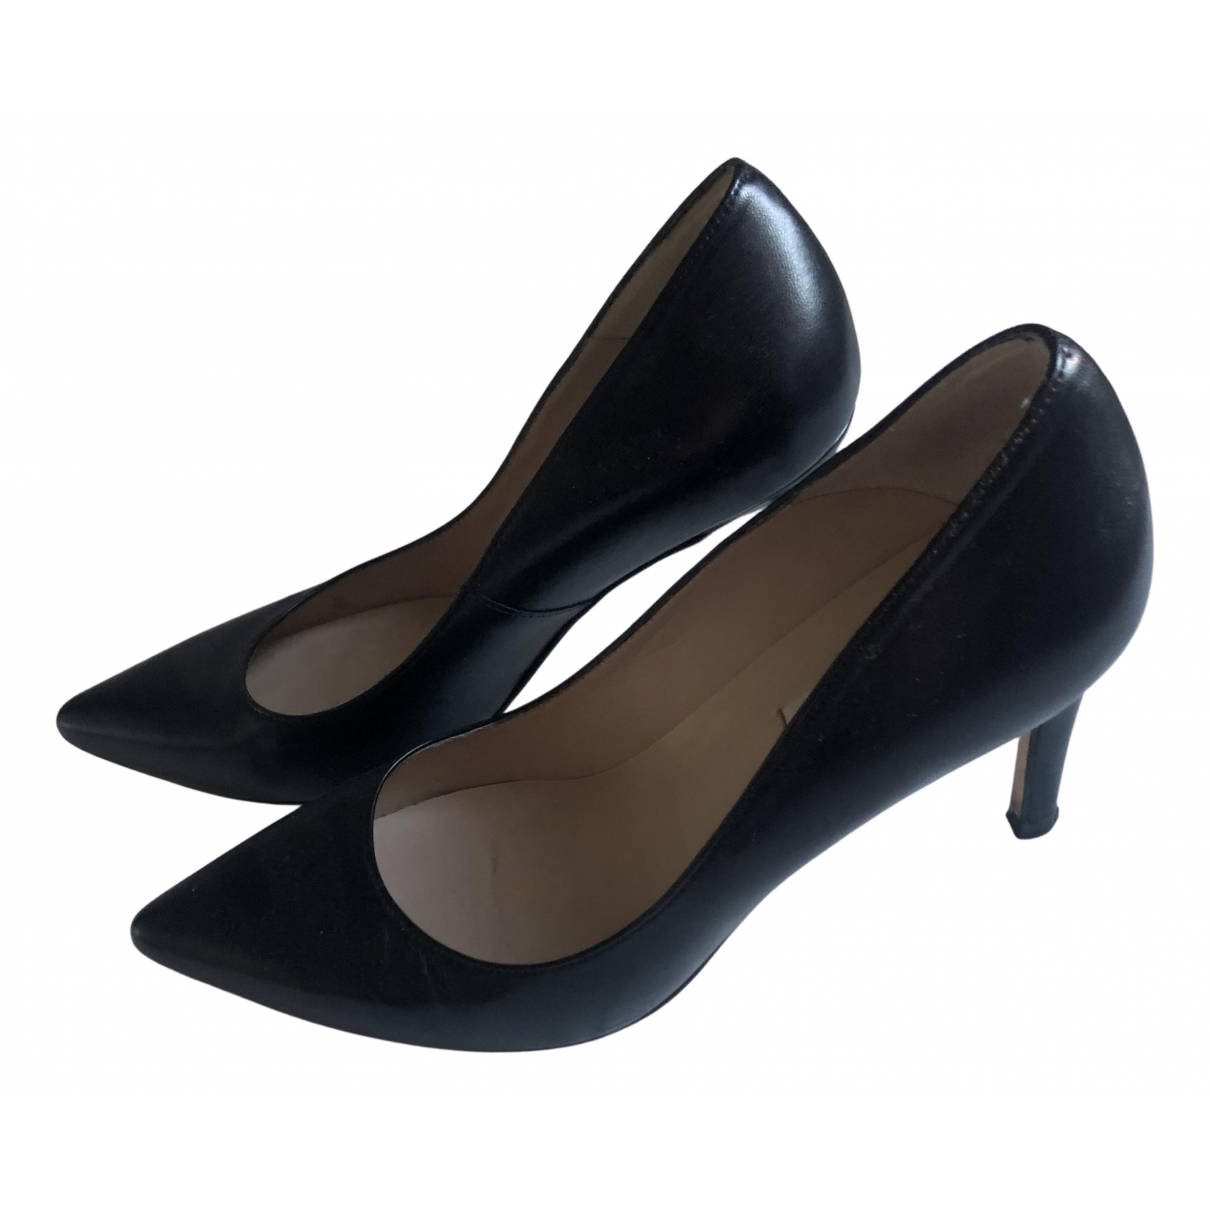 Lk Bennett N Black Leather Heels for Women 36.5 EU